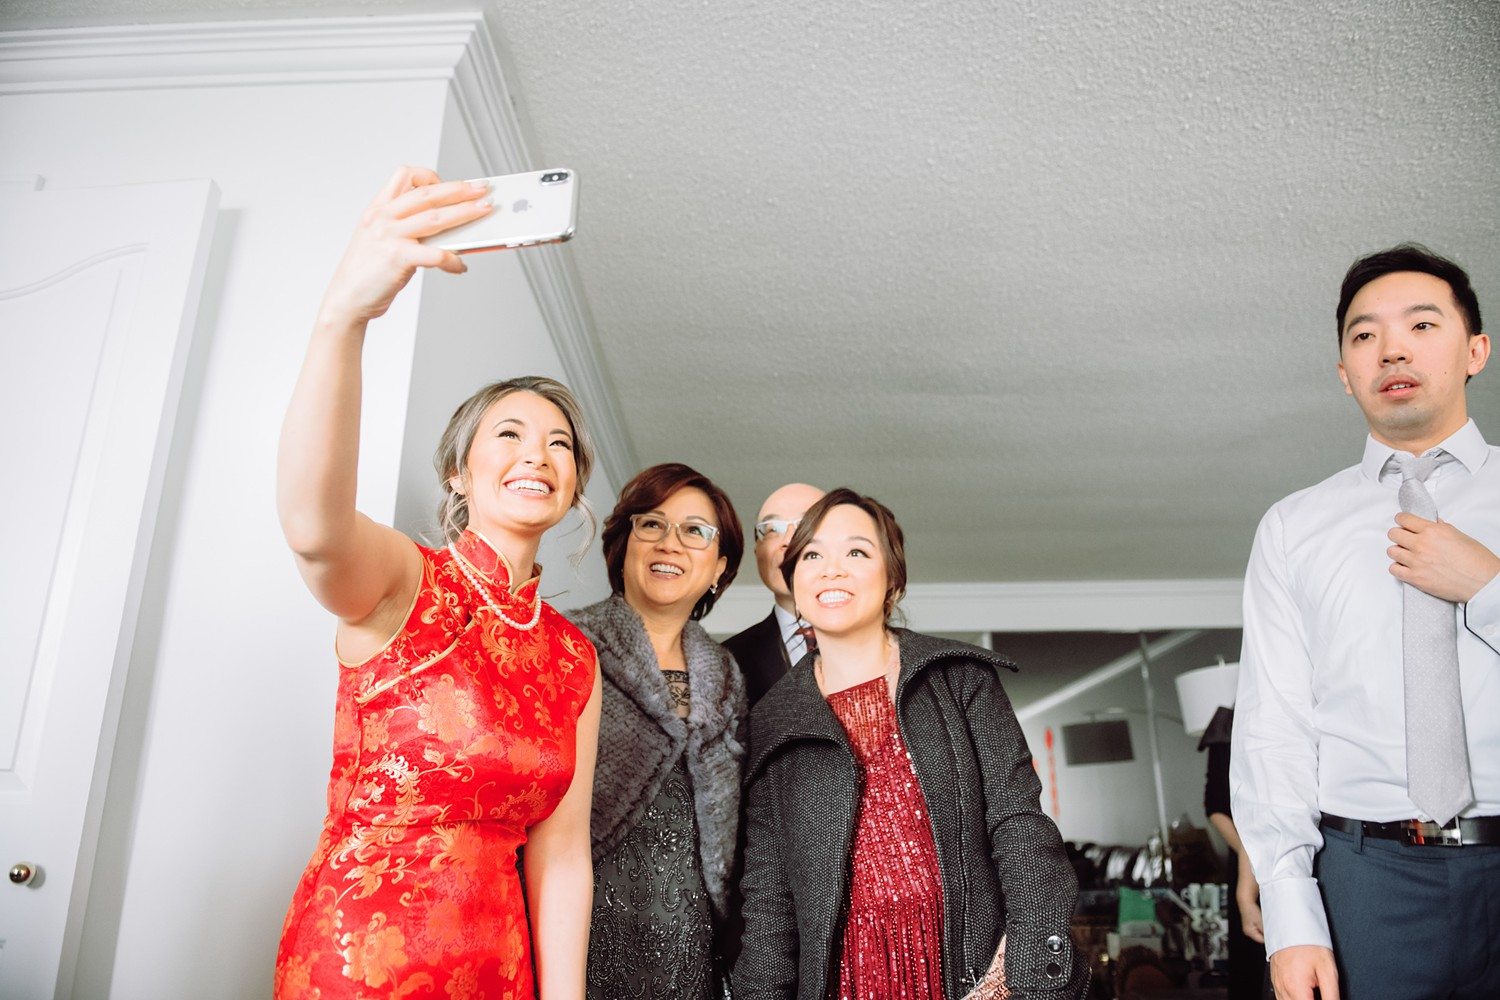 Selfies_Archeo_Distillery_District_Wedding_Photos_Toronto_Destination_Wedding_Photographer-Rhythm_Photography